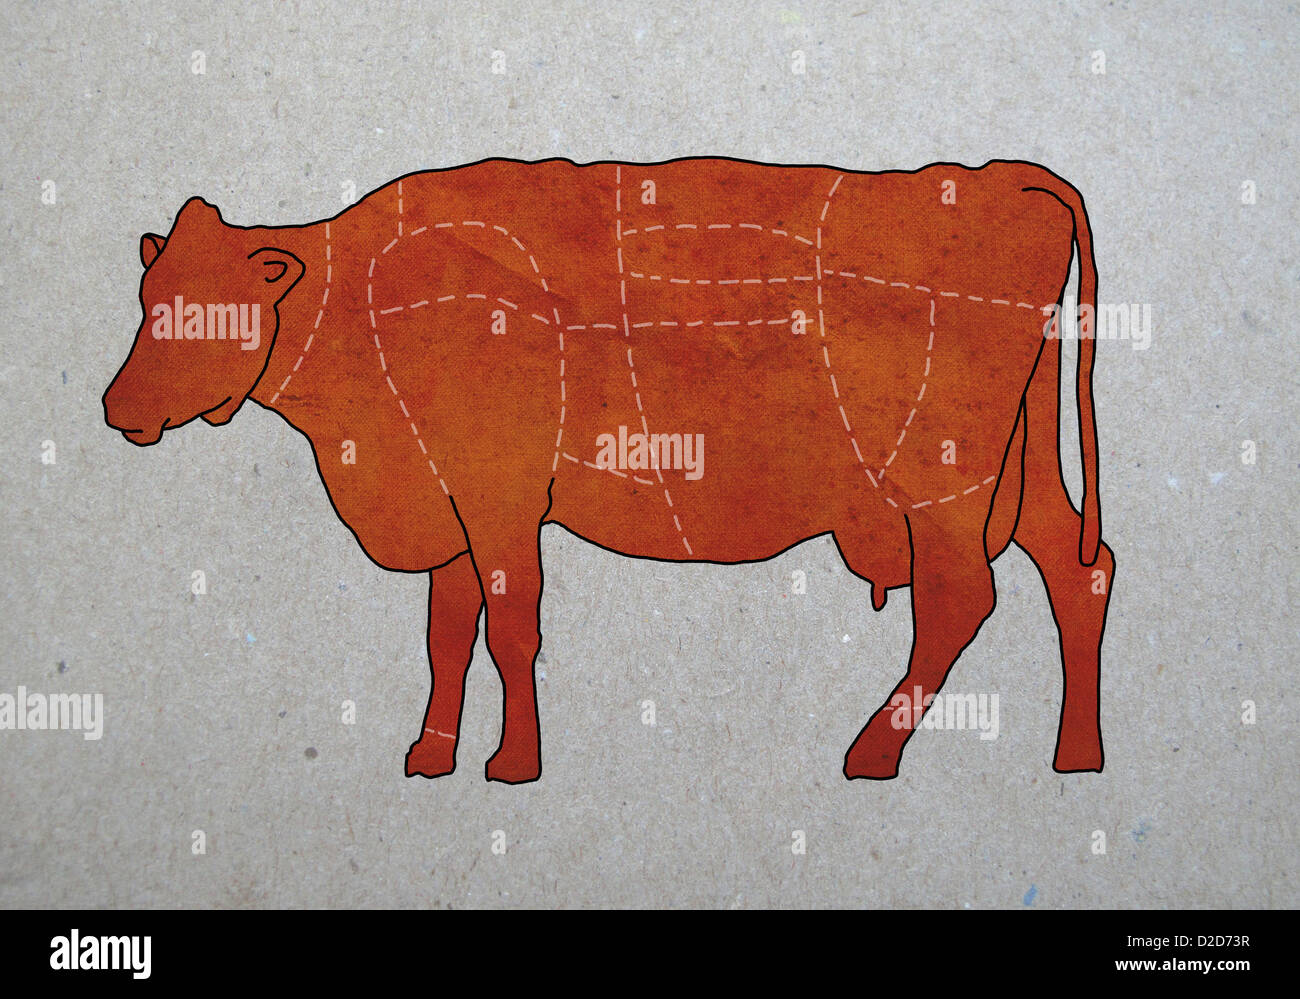 Diagram of cow stock photos diagram of cow stock images alamy a butchers diagram of a cow stock image ccuart Gallery